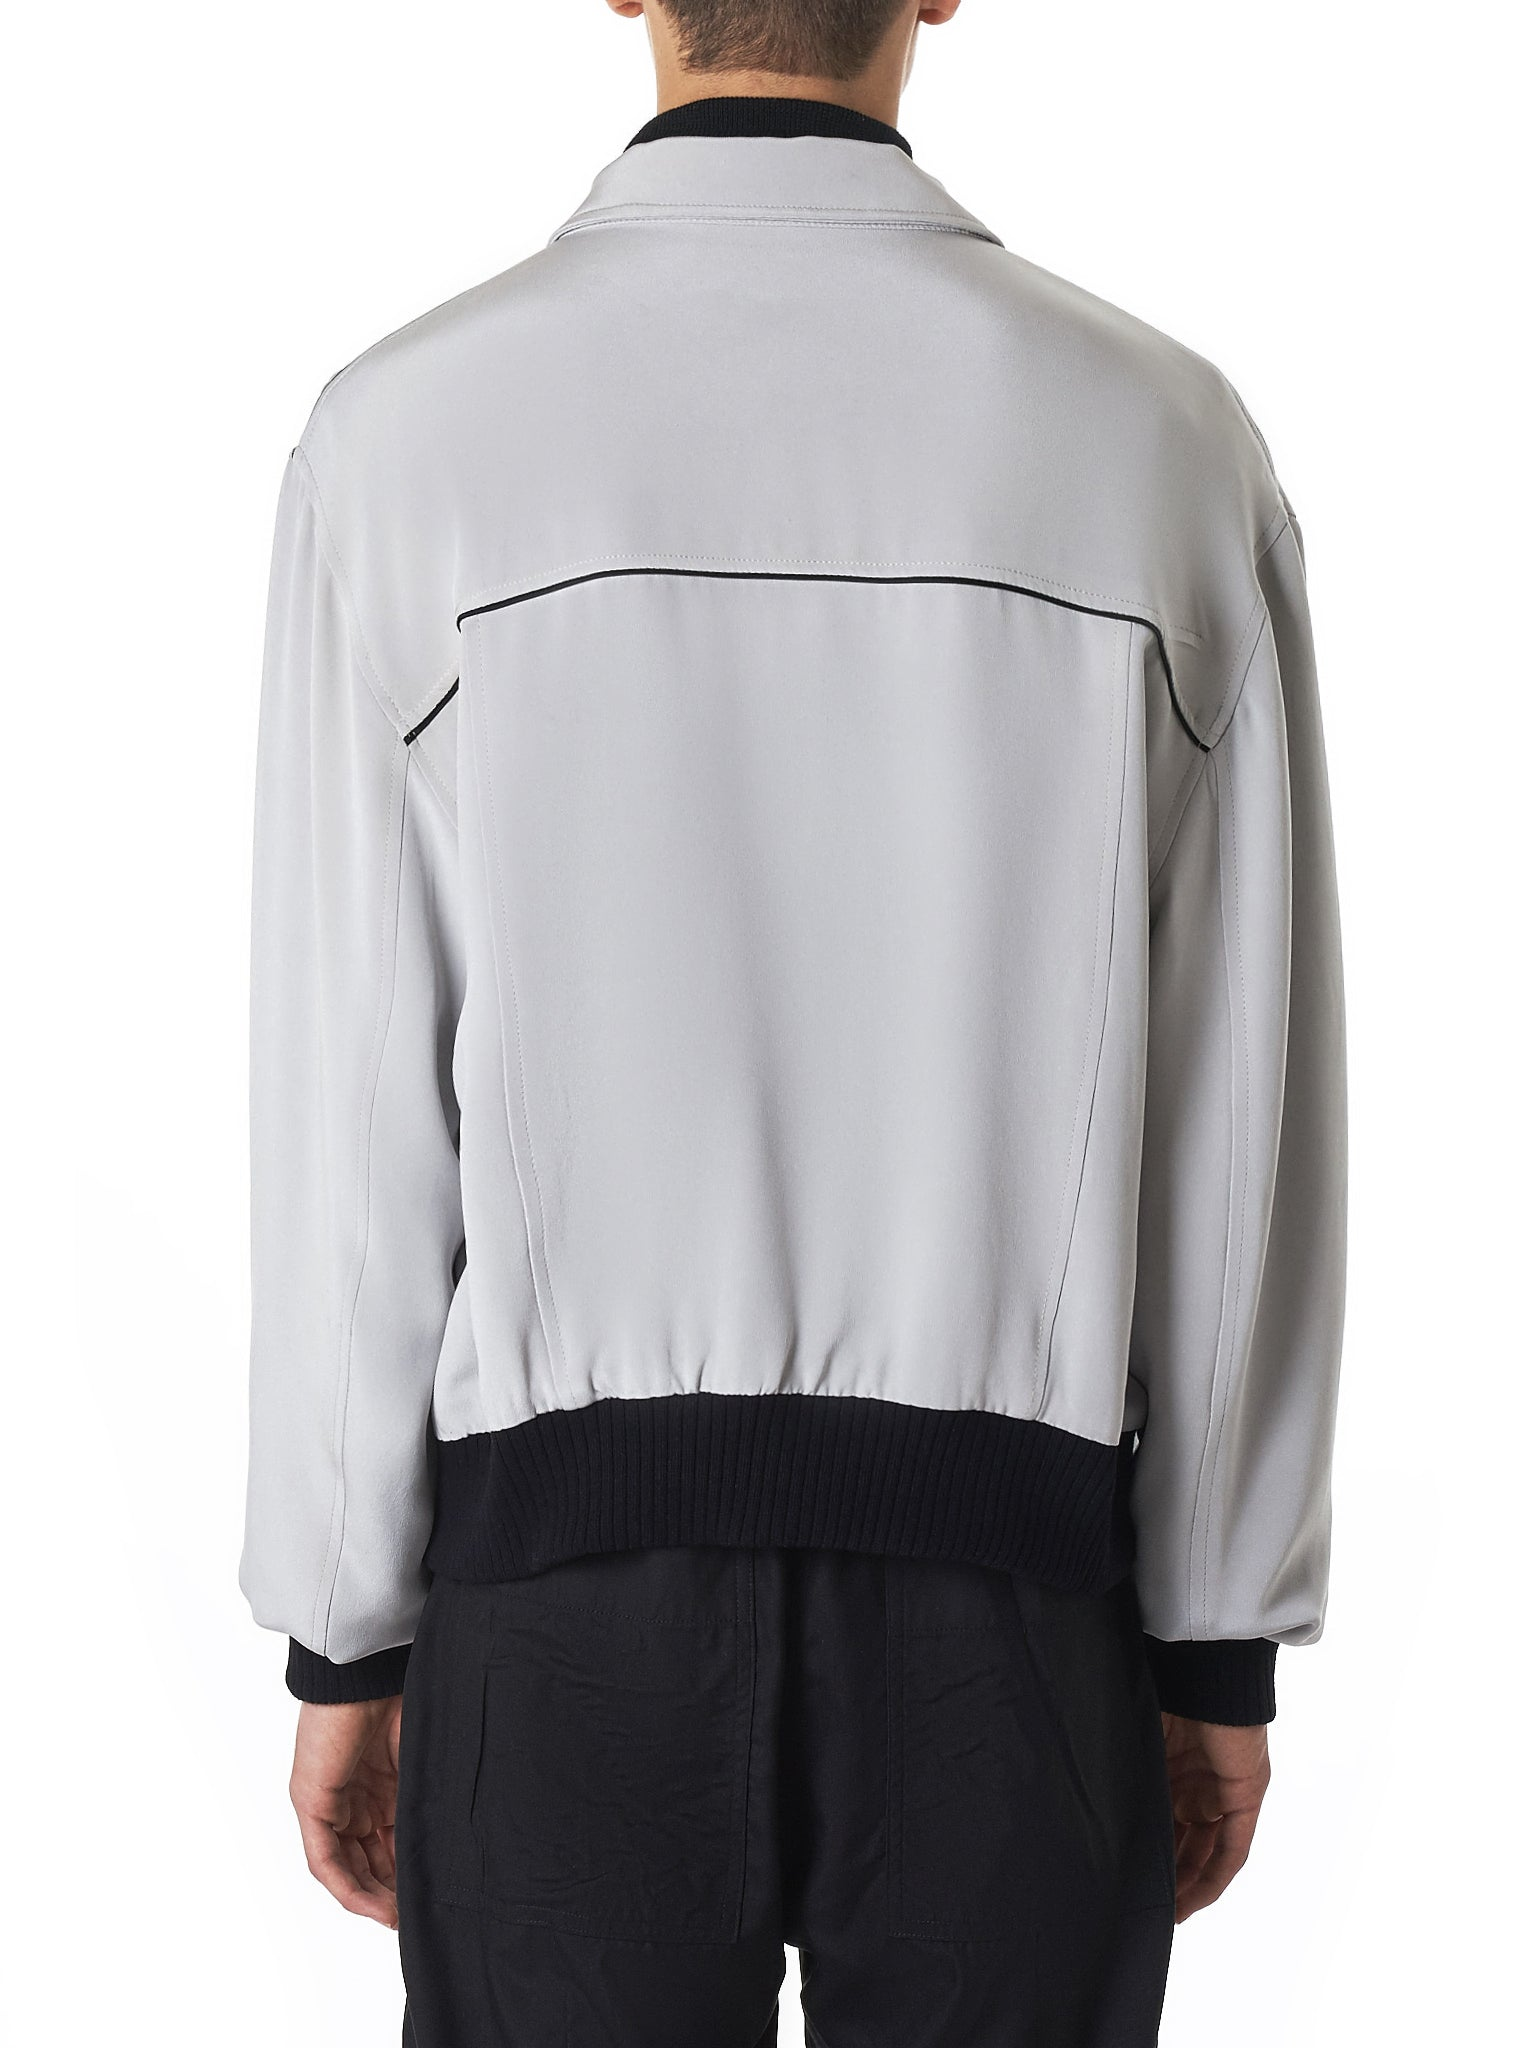 Nahmias Silk Jacket - Hlorenzo Back